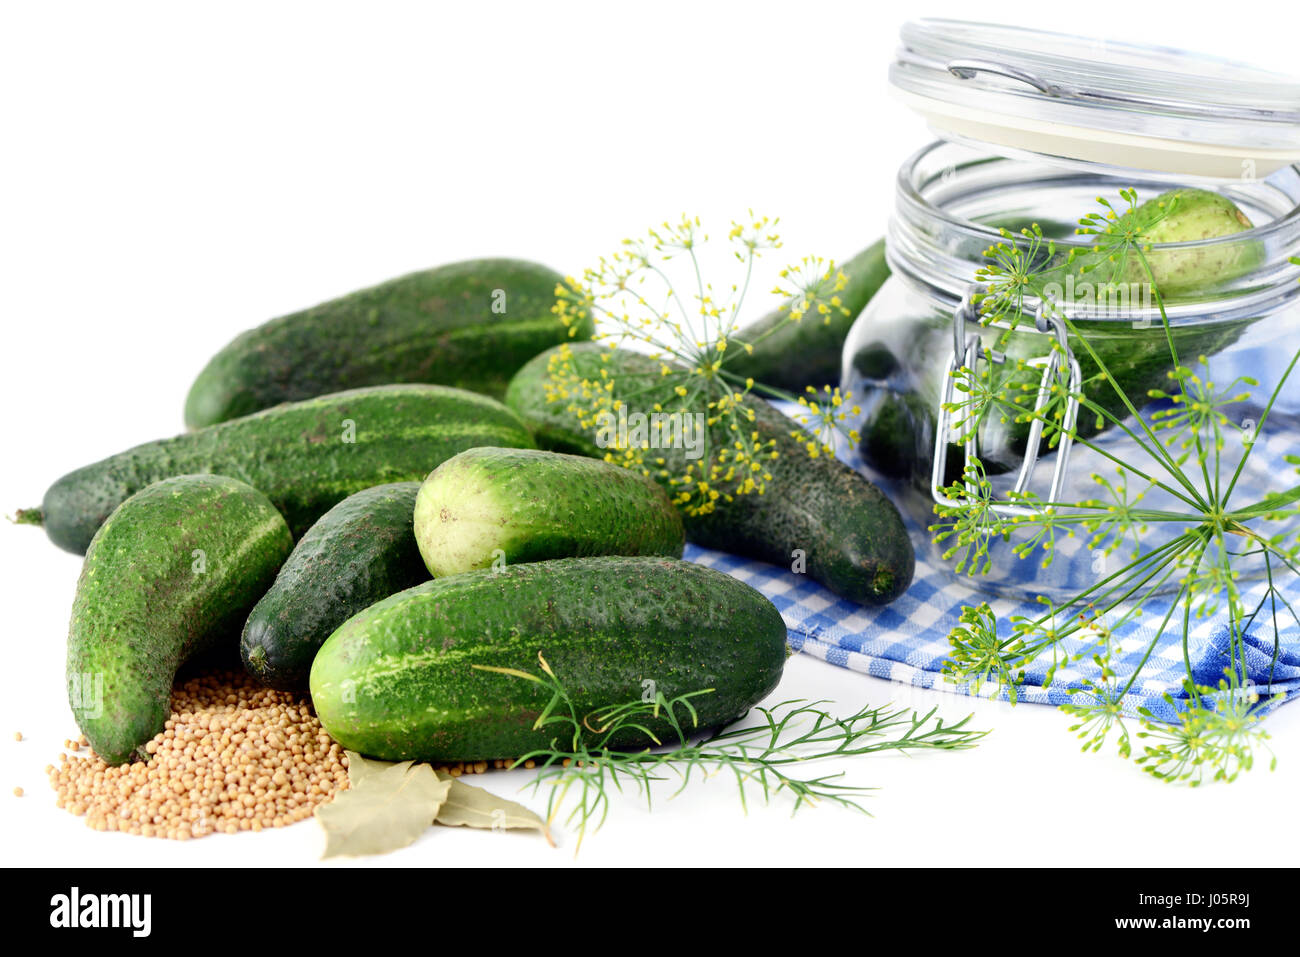 canning cucumber in a jar with spices like dill - Stock Image